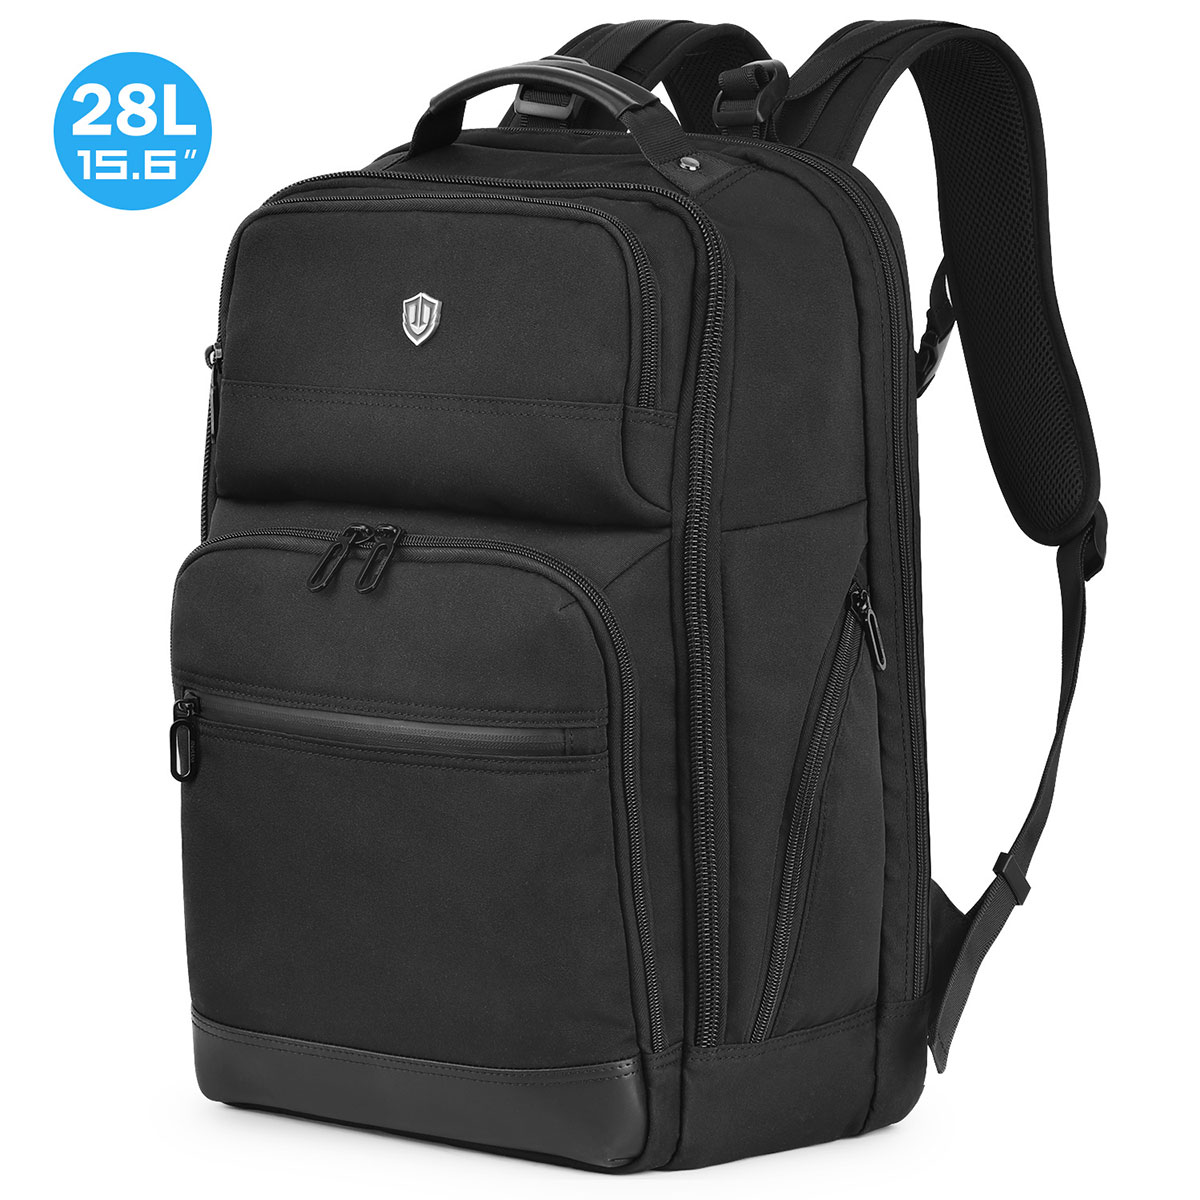 SHIELDON 15.6-inch Laptop Backpack, 28L Large Business Travel Laptop Backpack Anti-Theft with RFID Blocking Pocket, Water Resistant Computer Backpack College High School Bag for Boys & Men